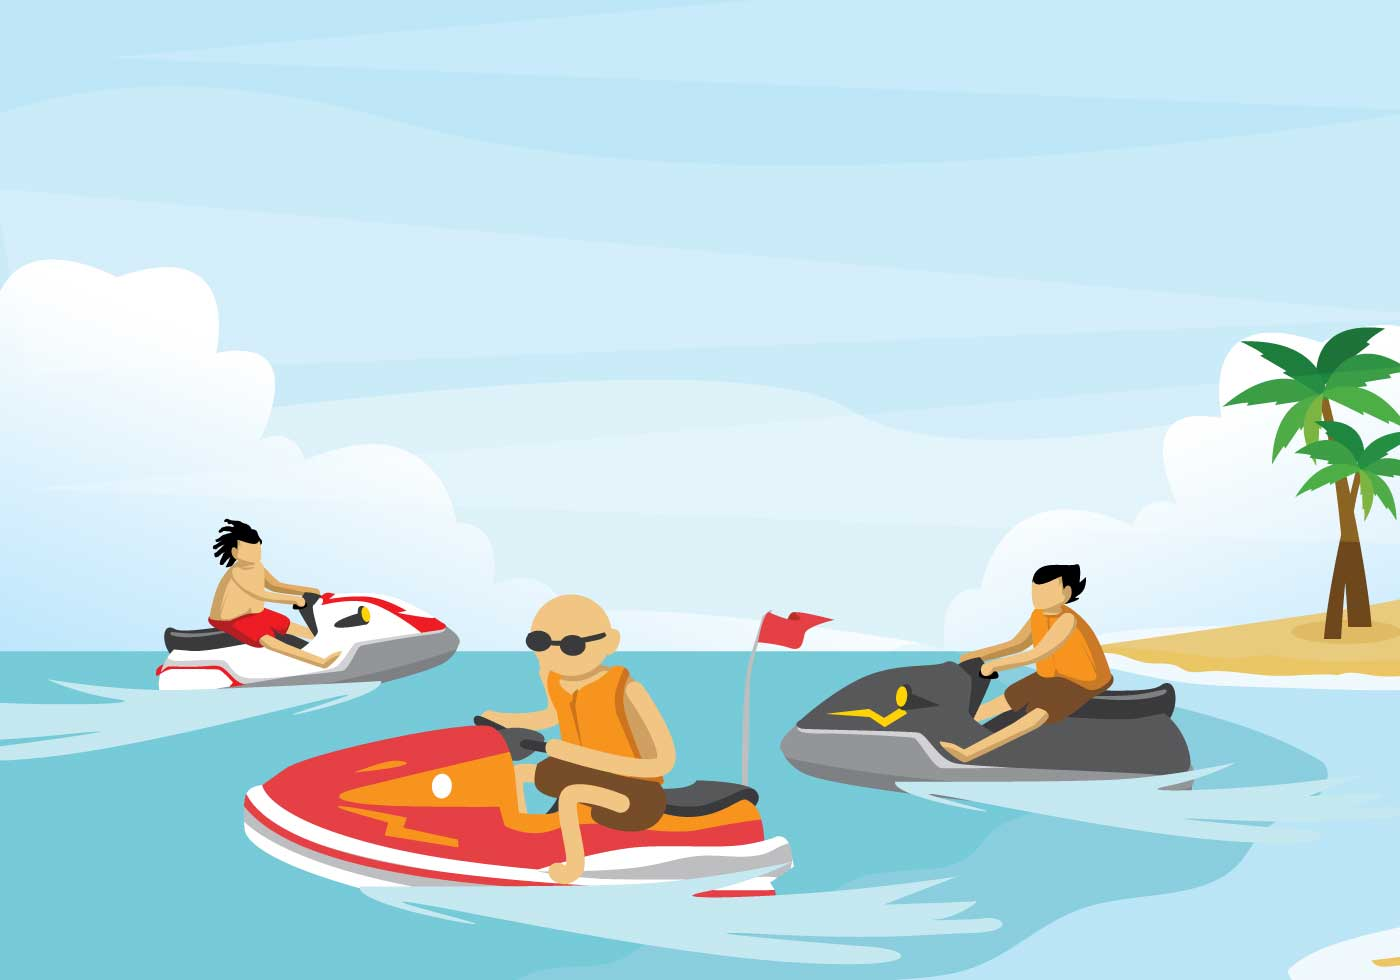 Gratis Jet Ski Free Jet Ski Illustration Download Free Vector Art